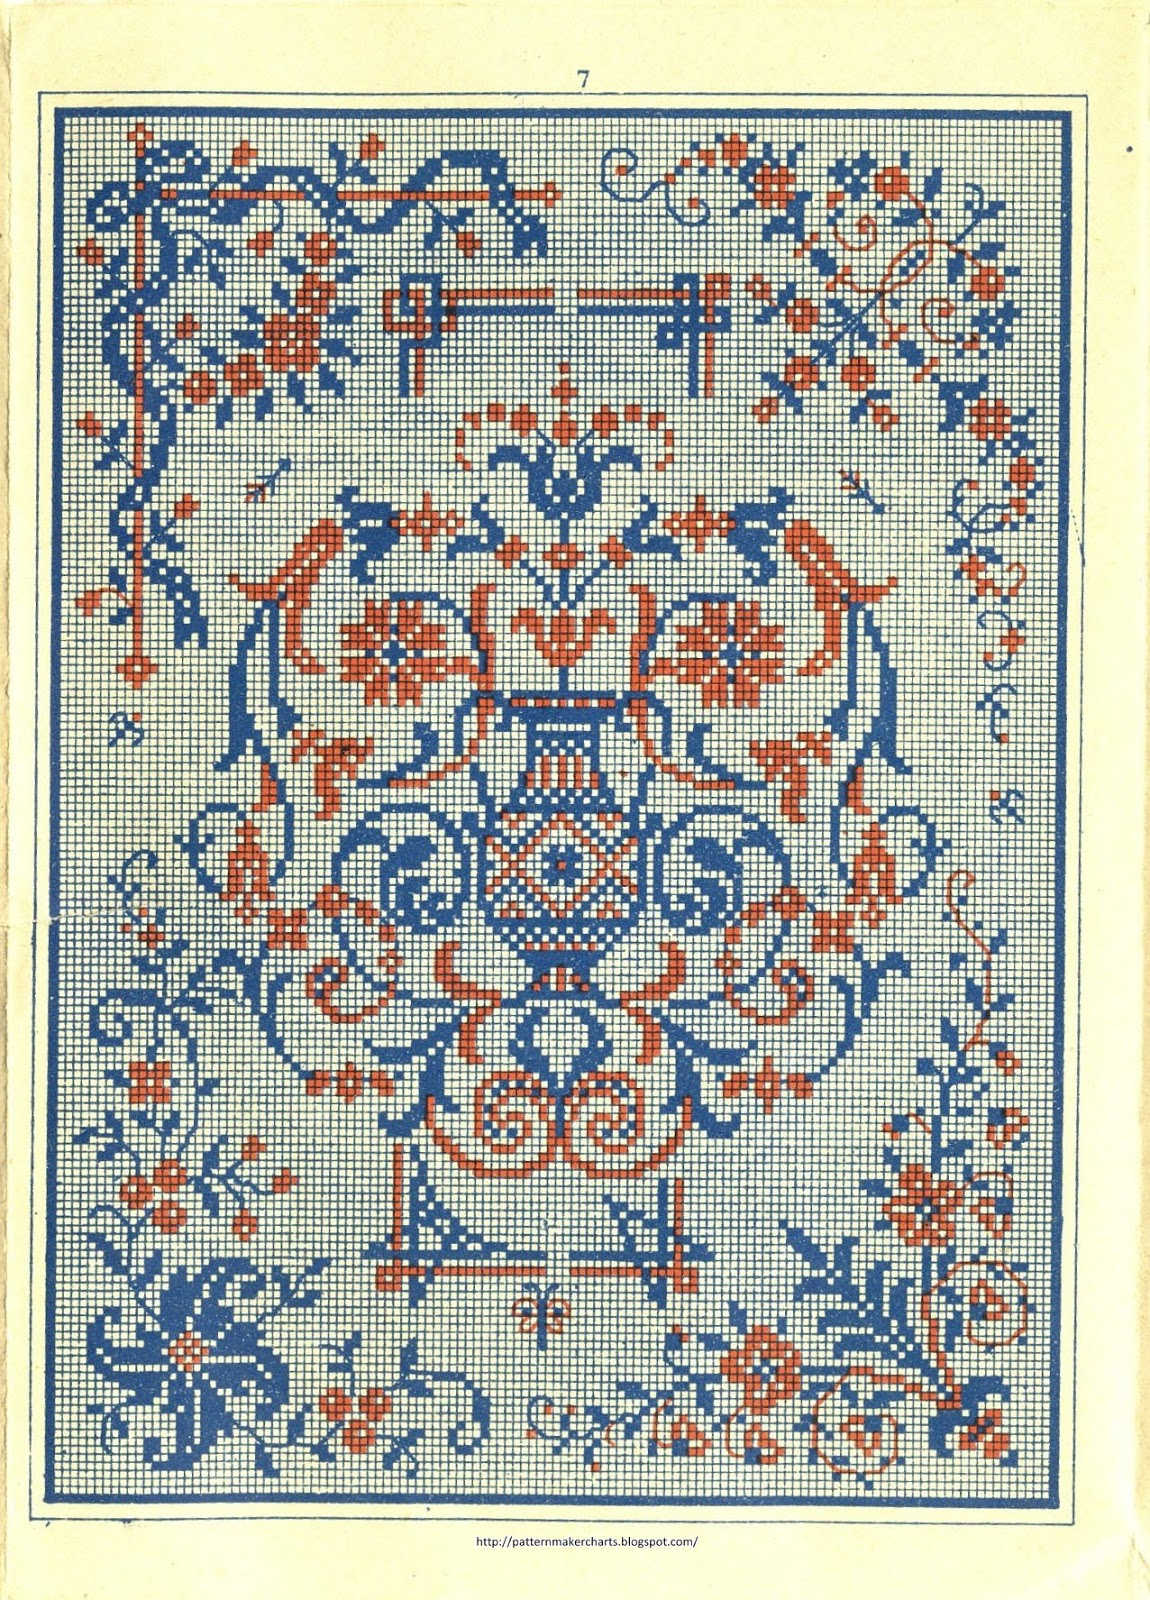 How To Make Your Own Cross Stitch Pattern Simple Design